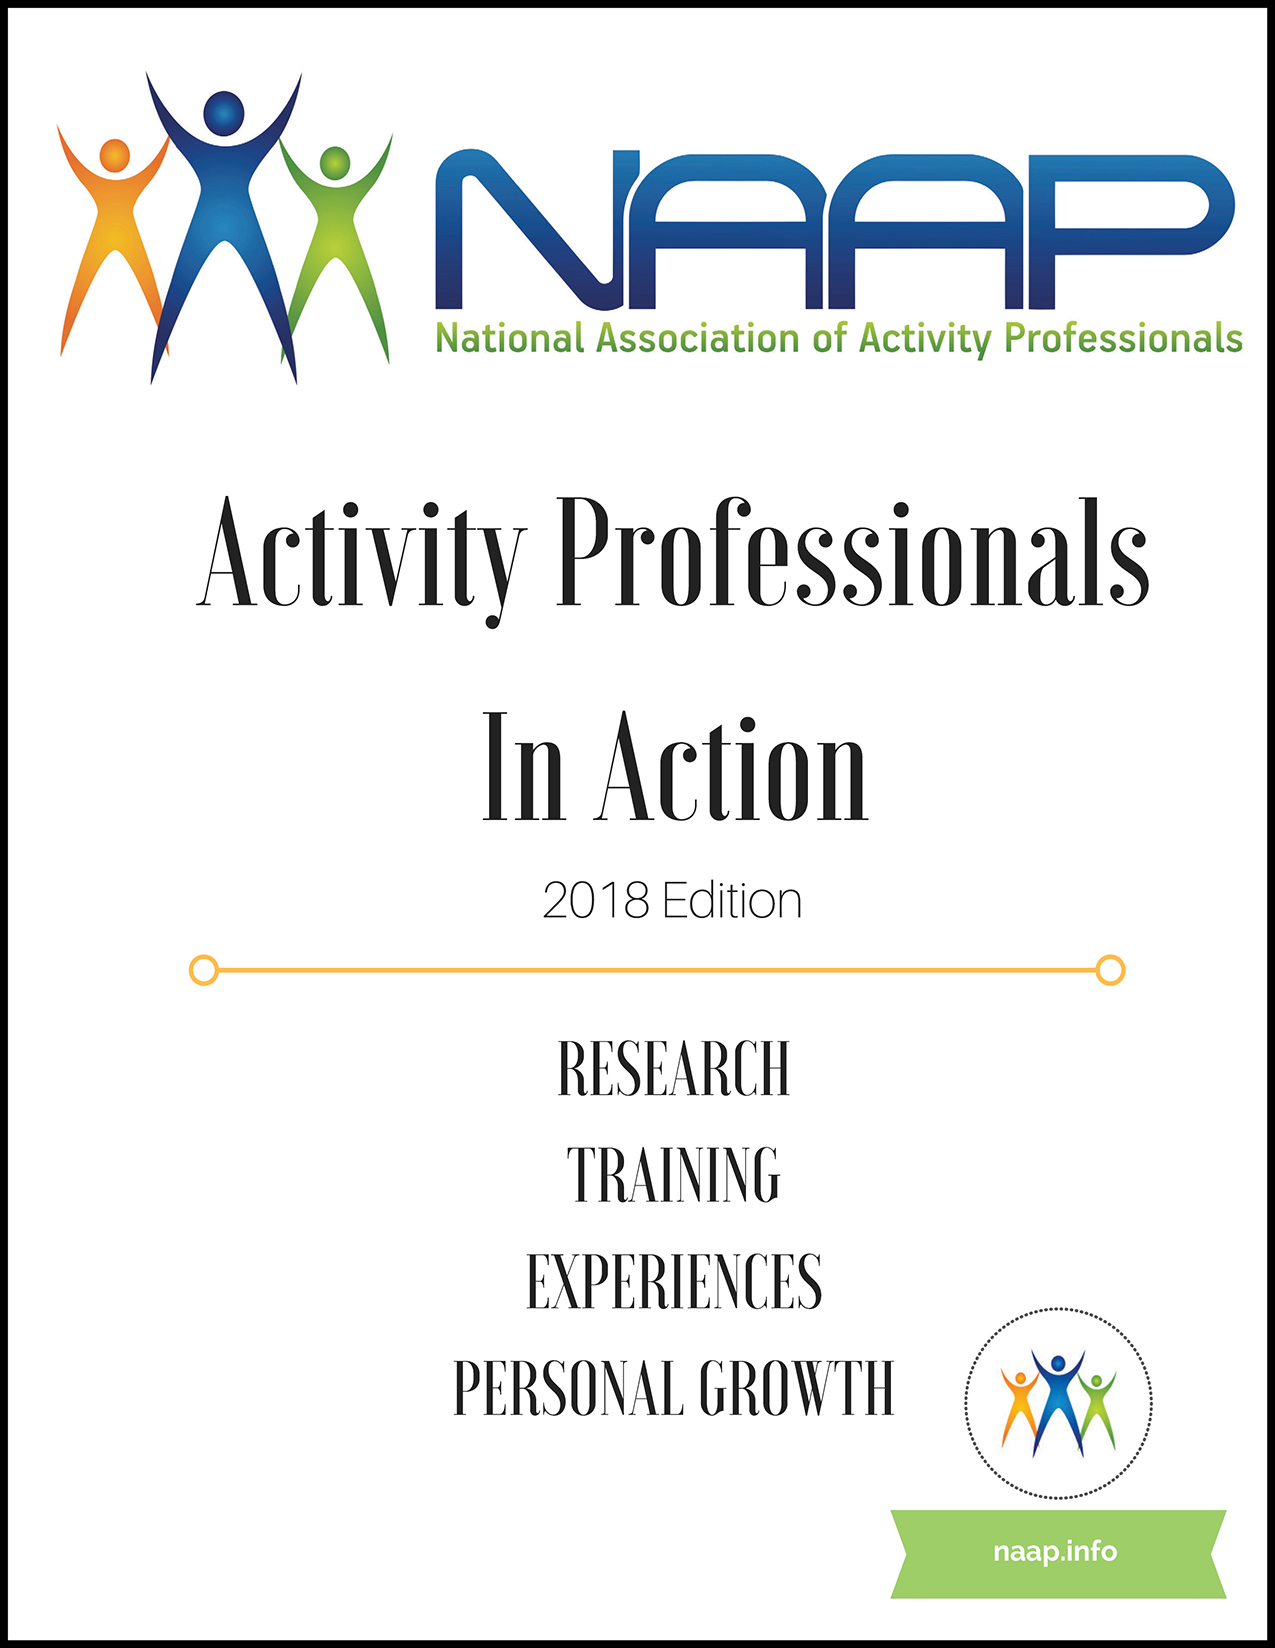 NAAP Activity Professionals in Action 2018